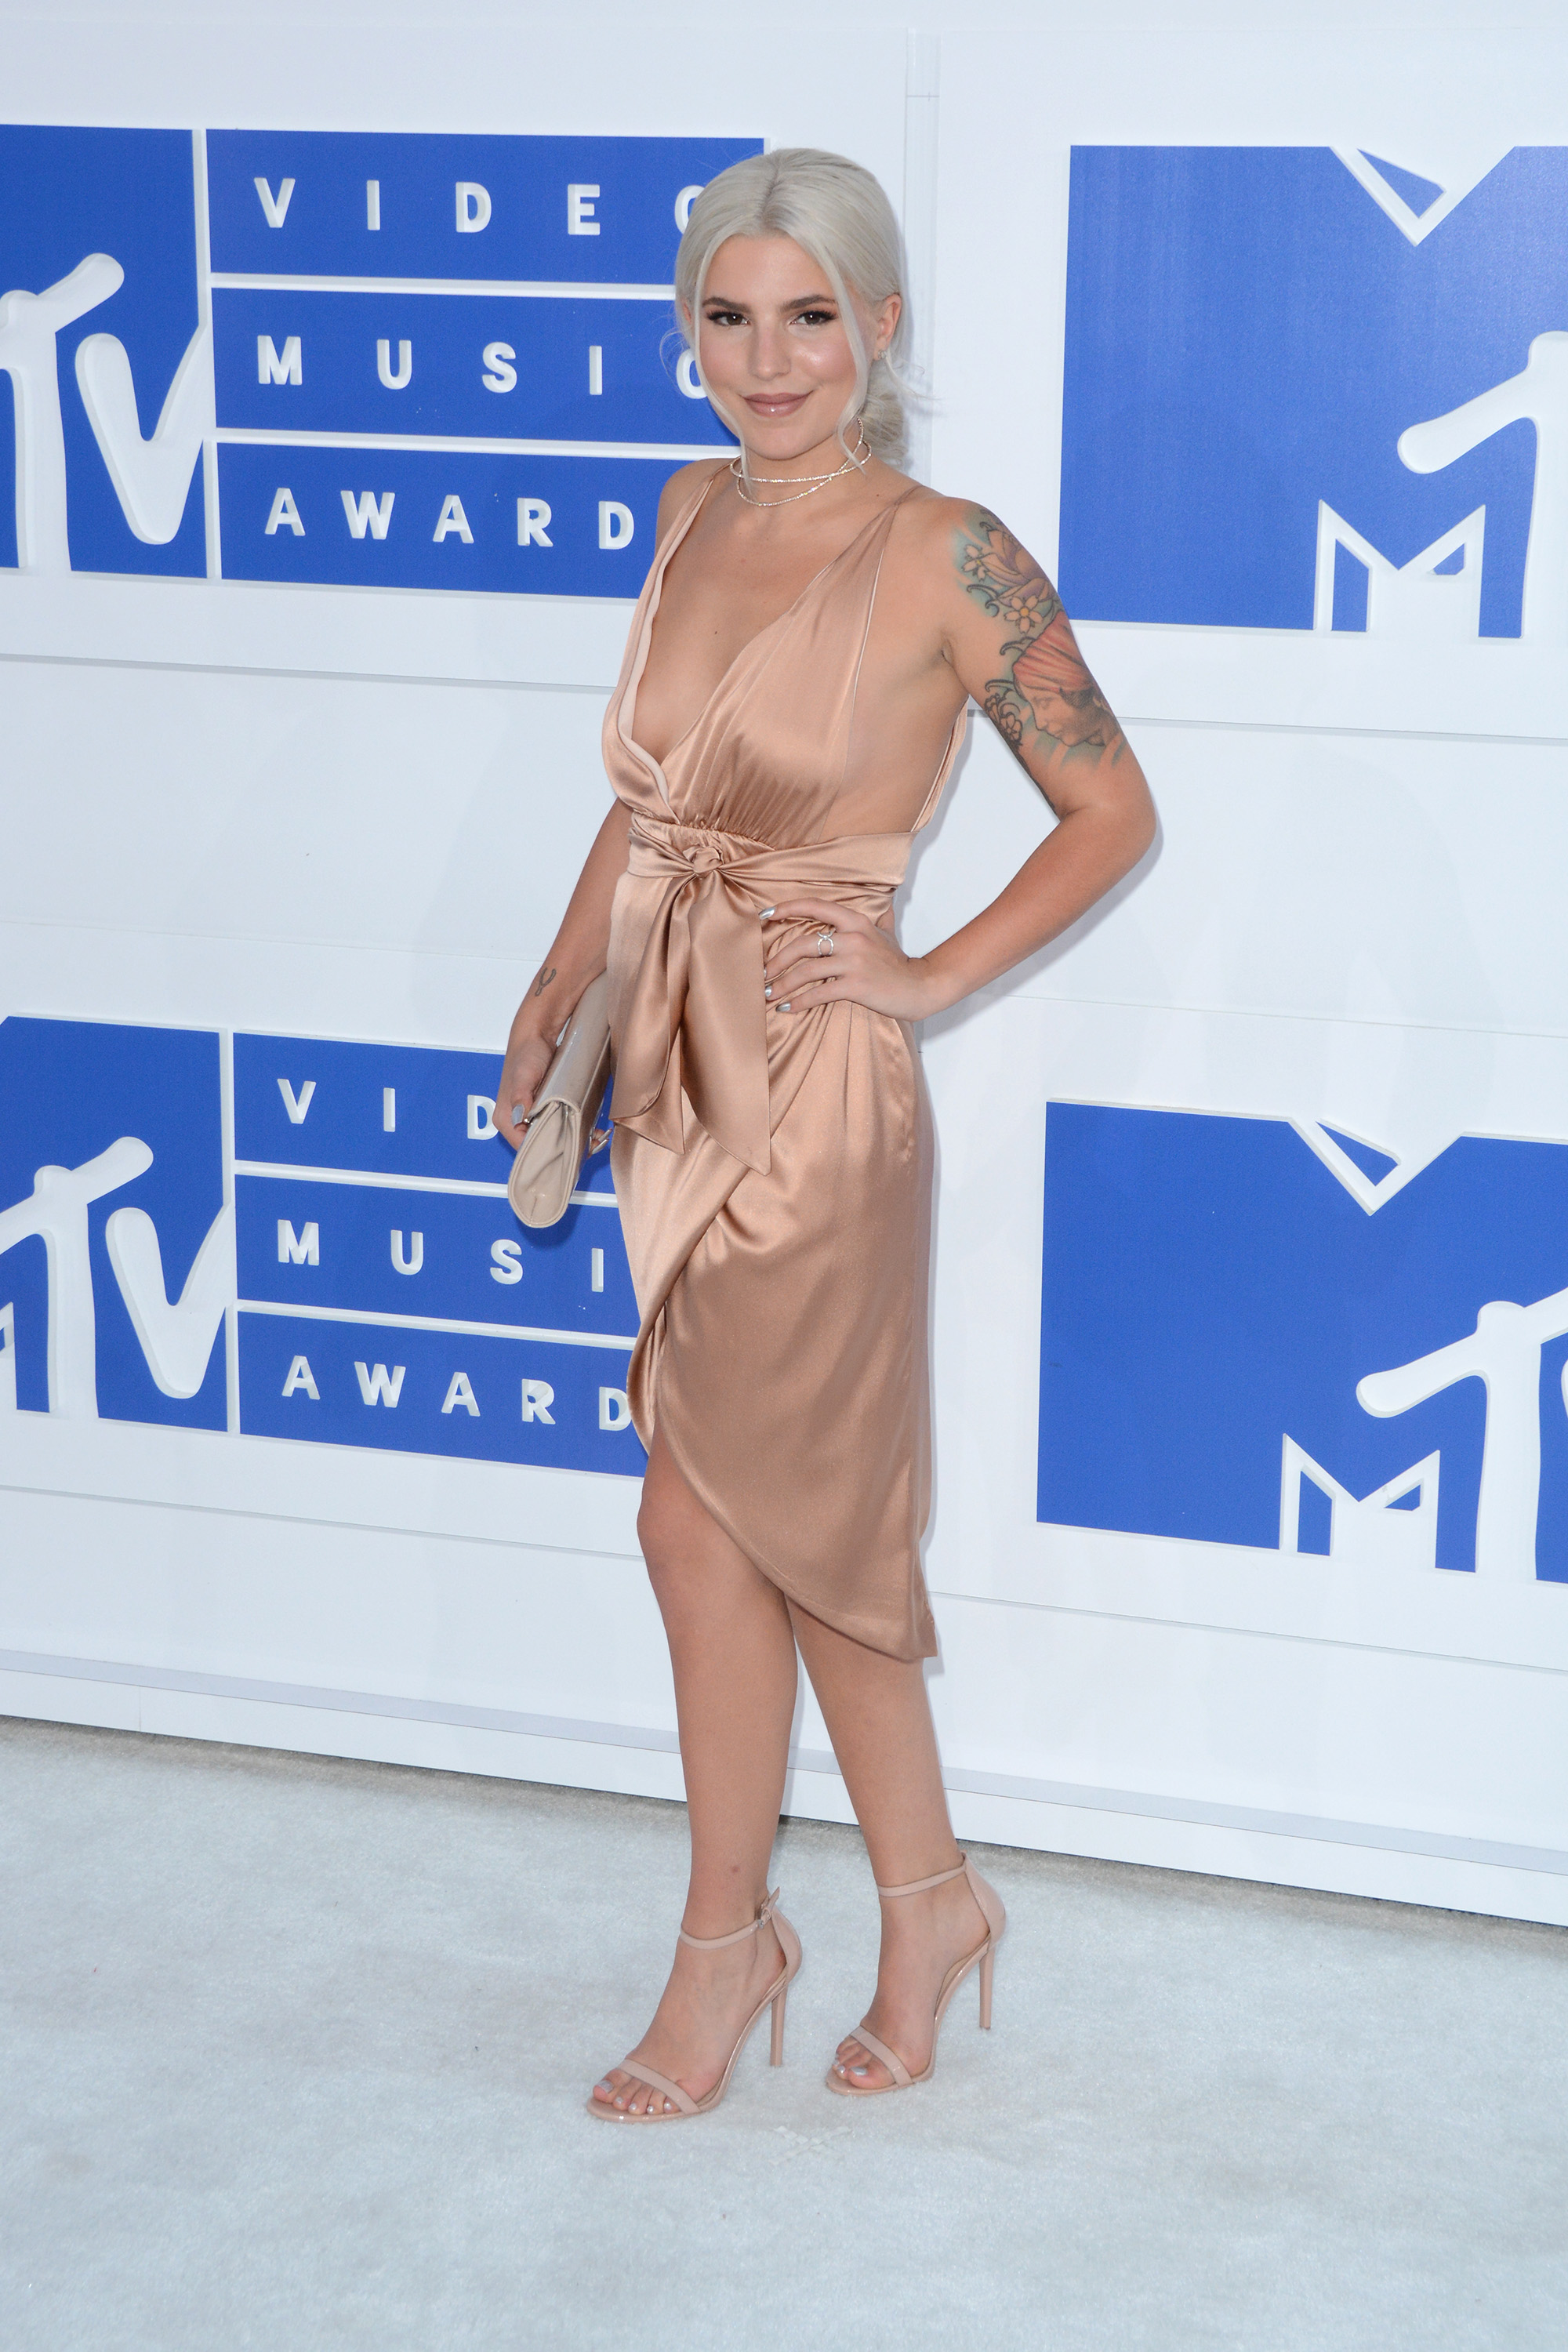 2016 MTV Video Music Awards - Red Carpet Arrivals                                    Featuring: Carly Aquilino                  Where: New York, New York, United States                  When: 29 Aug 2016                  Credit: Ivan Nikolov/WENN.com